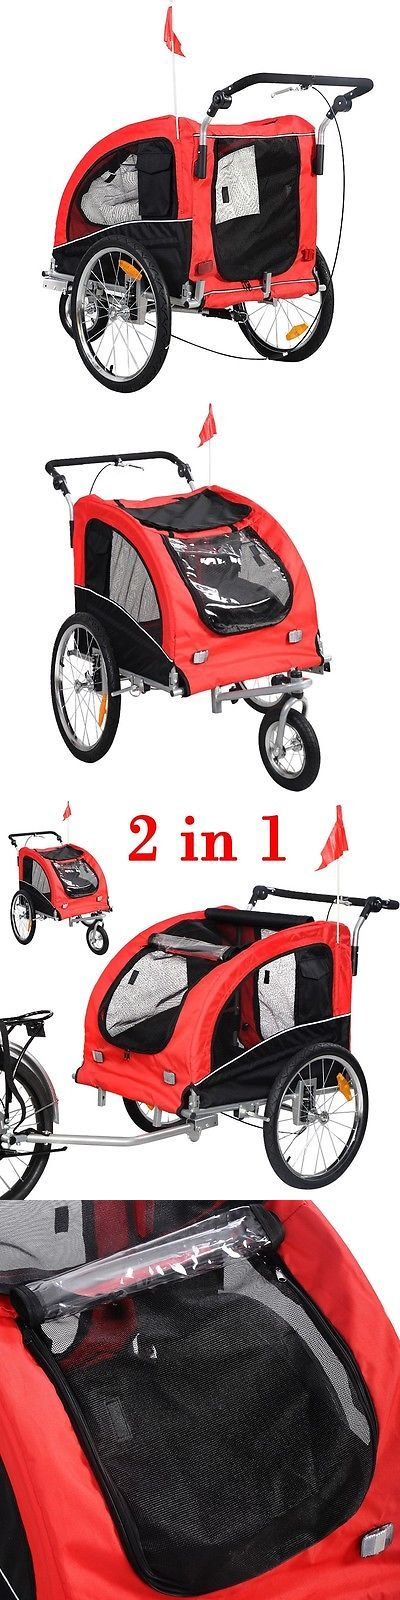 Strollers 116380: Red Pet Bike Dog Trailer Bicycle Trailer Stroller Jogging W/ Suspension BUY IT NOW ONLY: $144.94